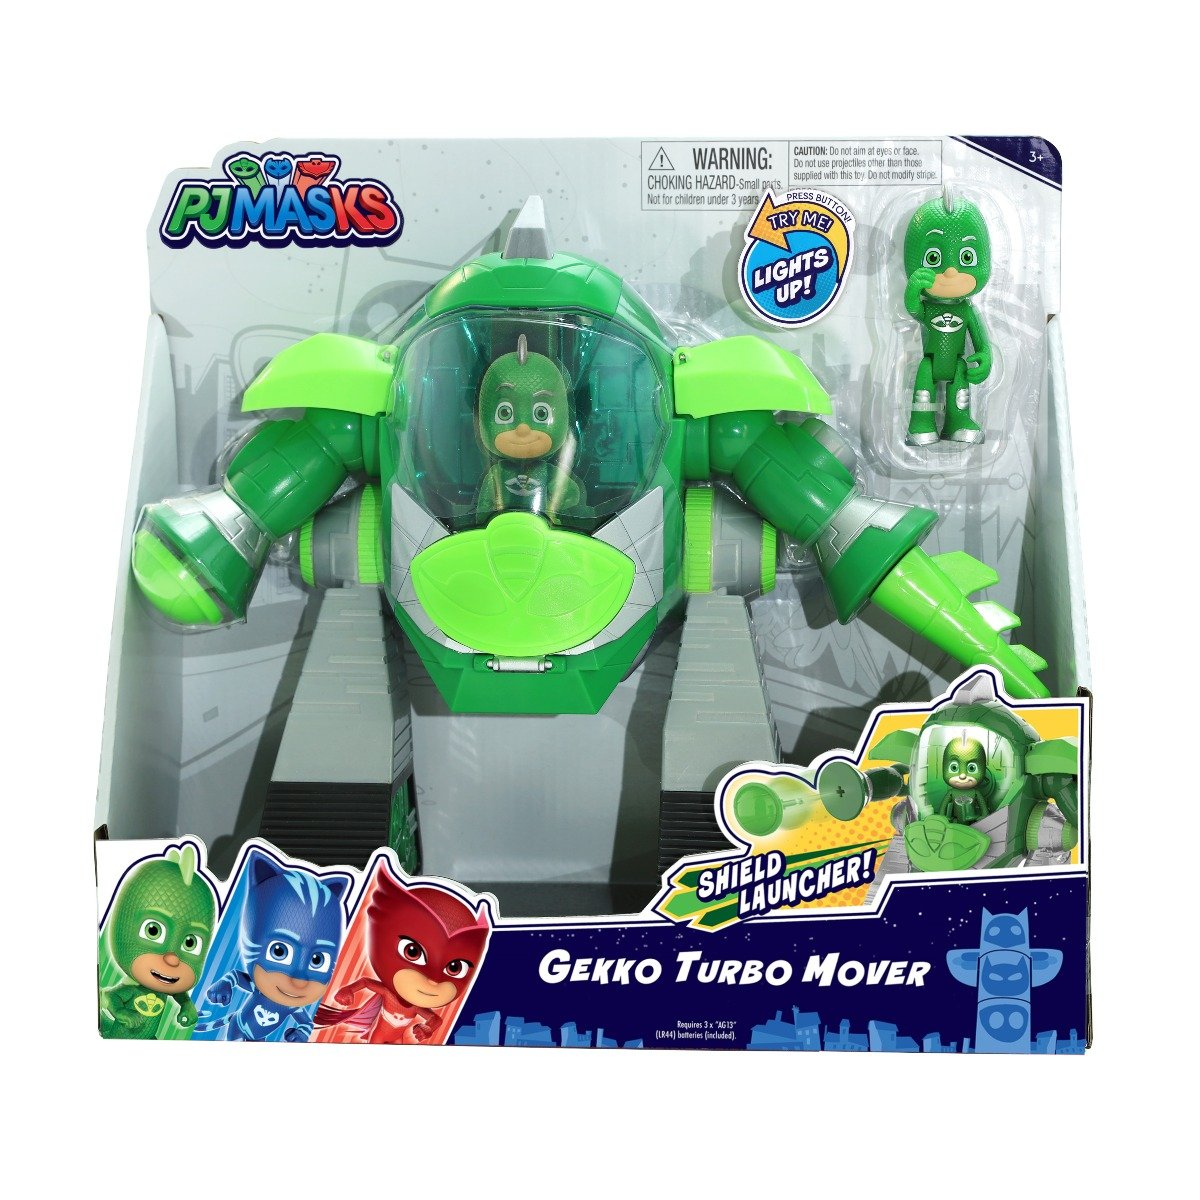 Figurina Pj Masks Turbo Mover, Gekko 95508